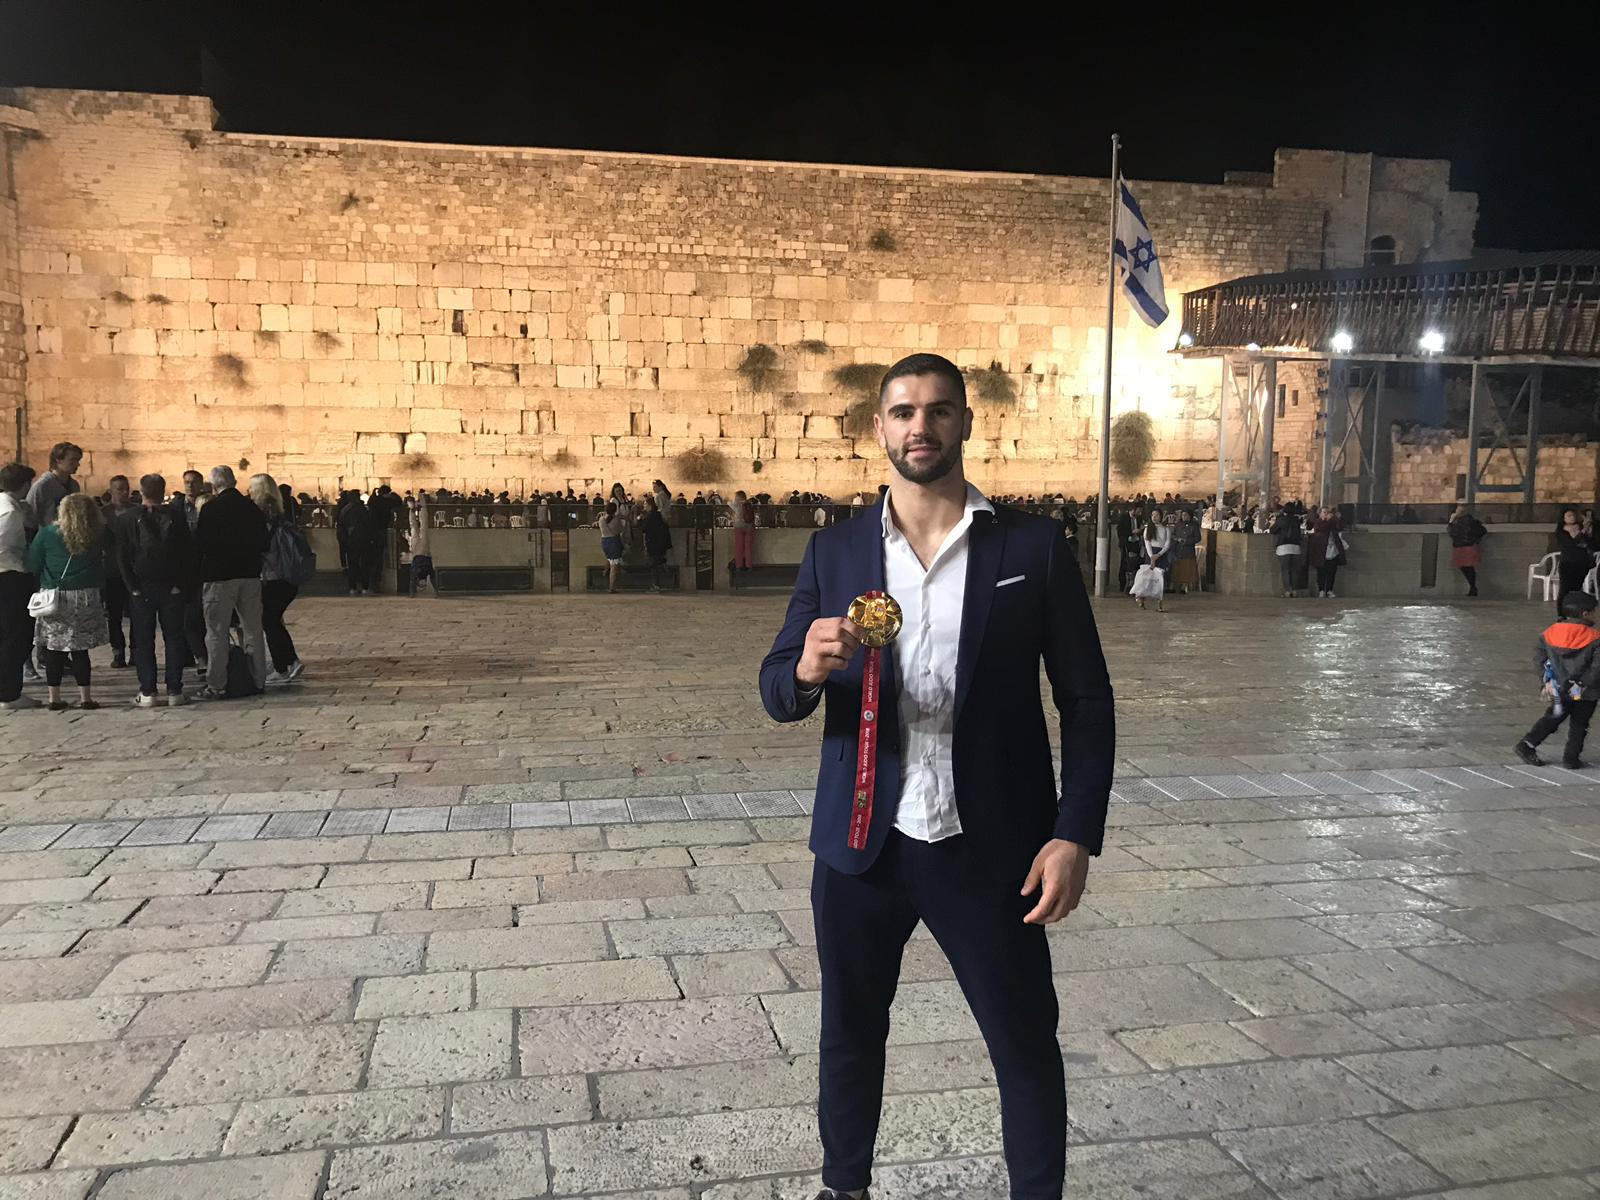 The Israeli judo athlete Peter Paltchik with the gold medal he won at the 2018 Abu Dhabi Grand Slam, in a picture taken in front of the Western Wall in Jerusalem // photo courtesy Peter Paltchik